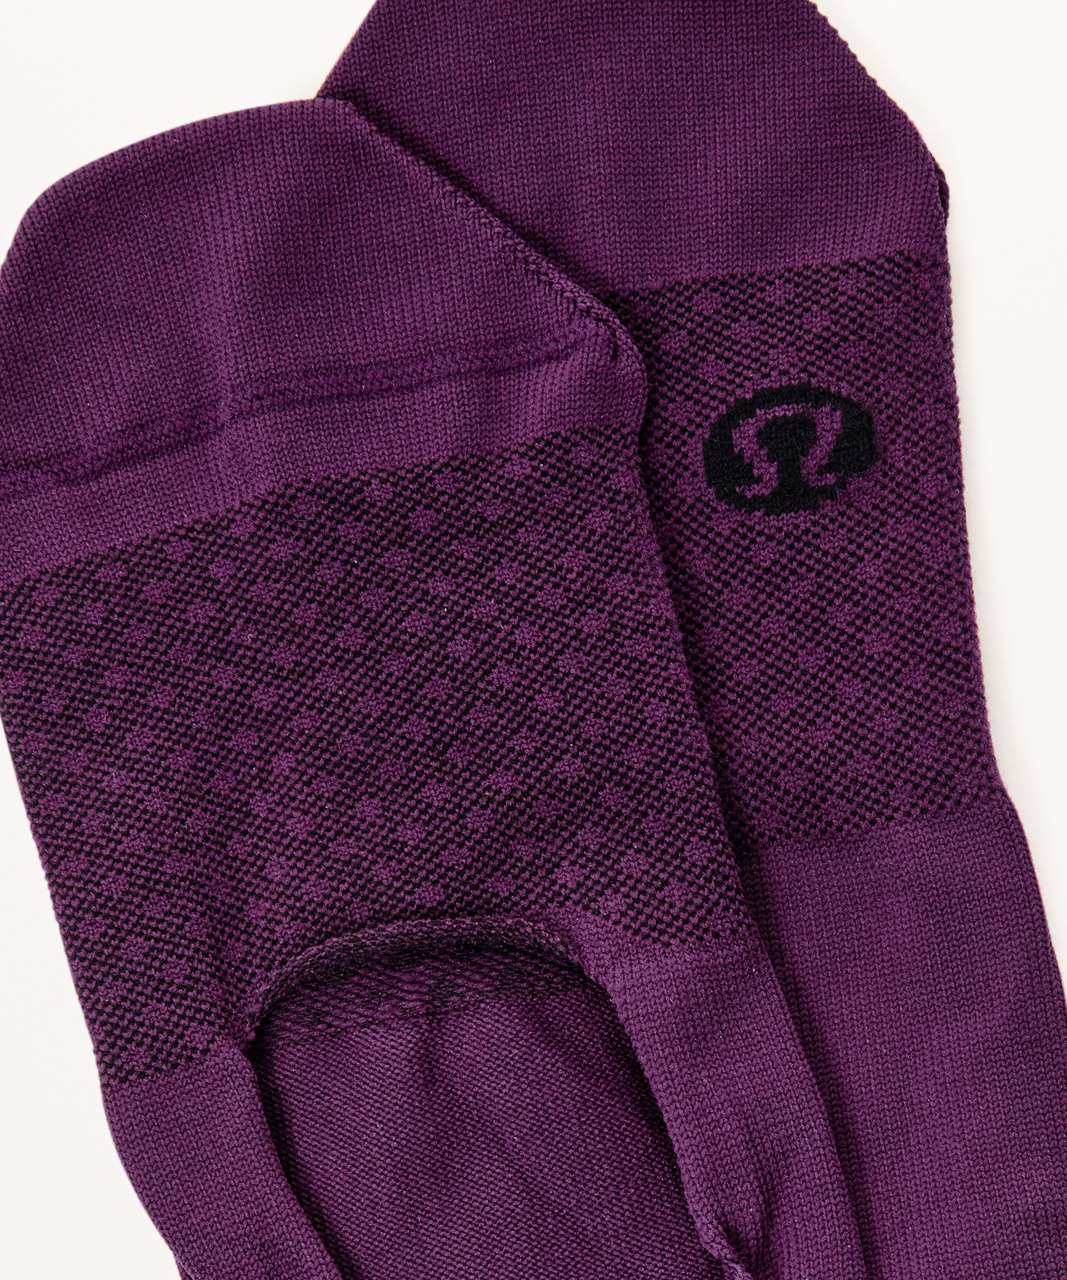 Lululemon Secret Sock - Ultra Plum / Black